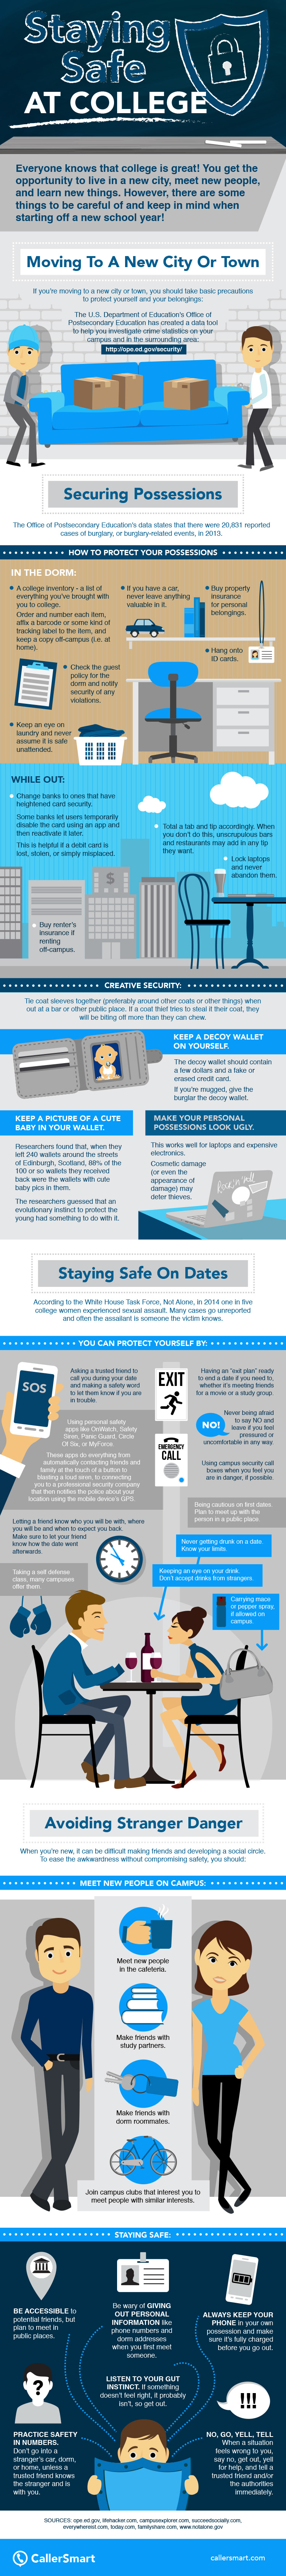 Staying Safe at College Infographic